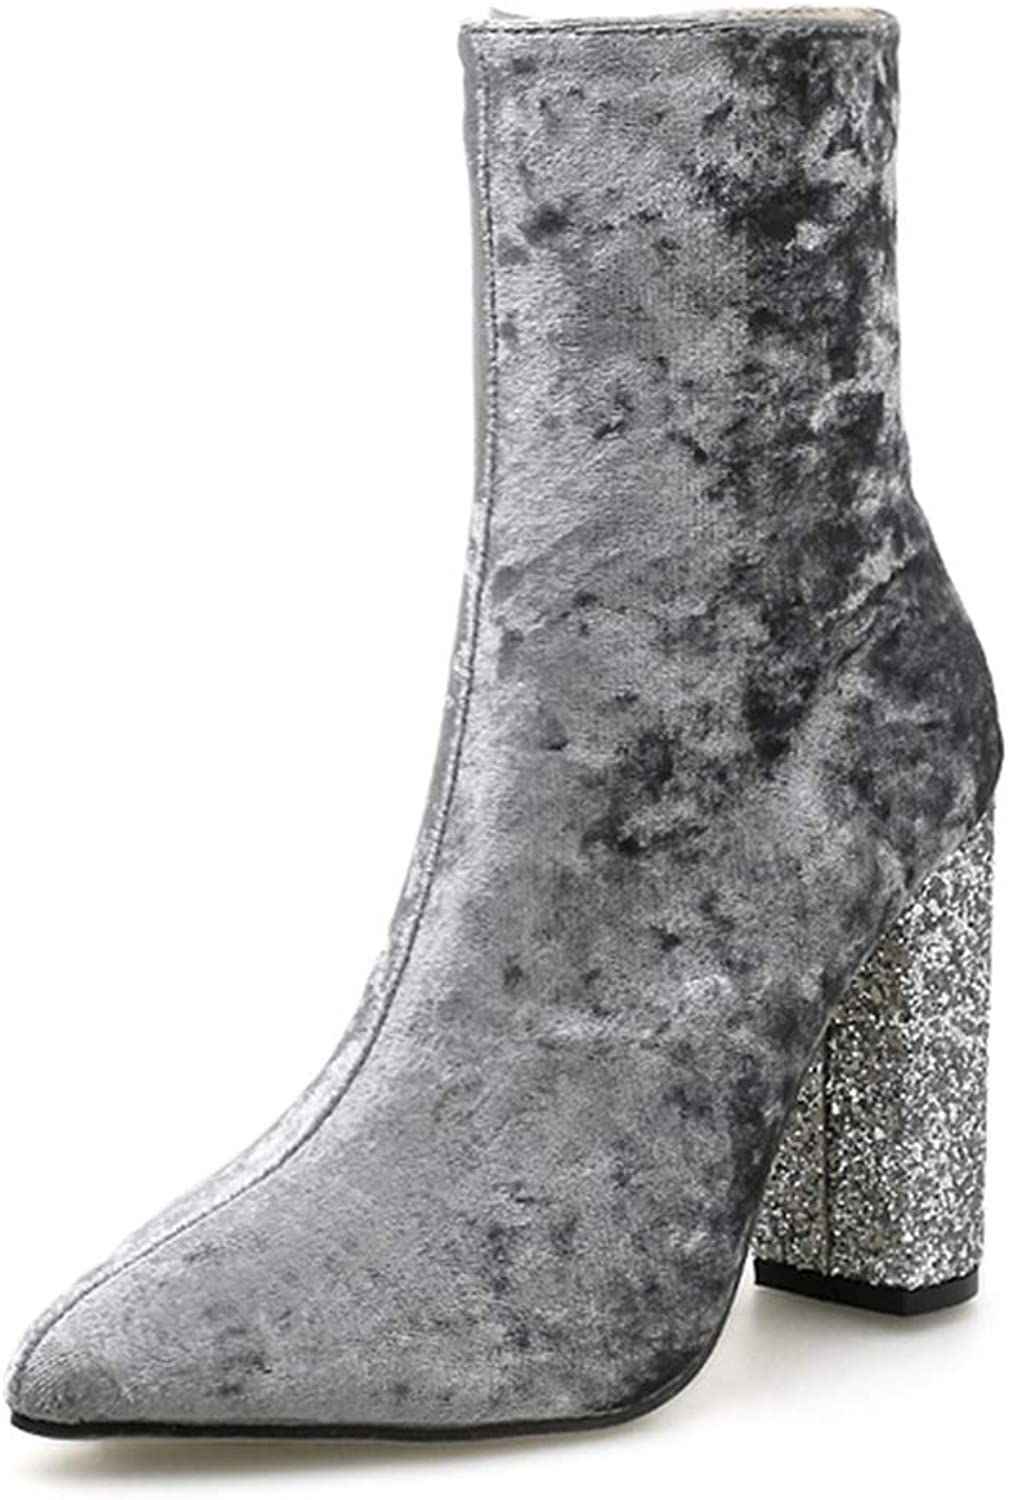 127b34f2b31c6 GIY Women Pointed Toe Ankle Boots Crystal Suede Side Zipper Heel ...